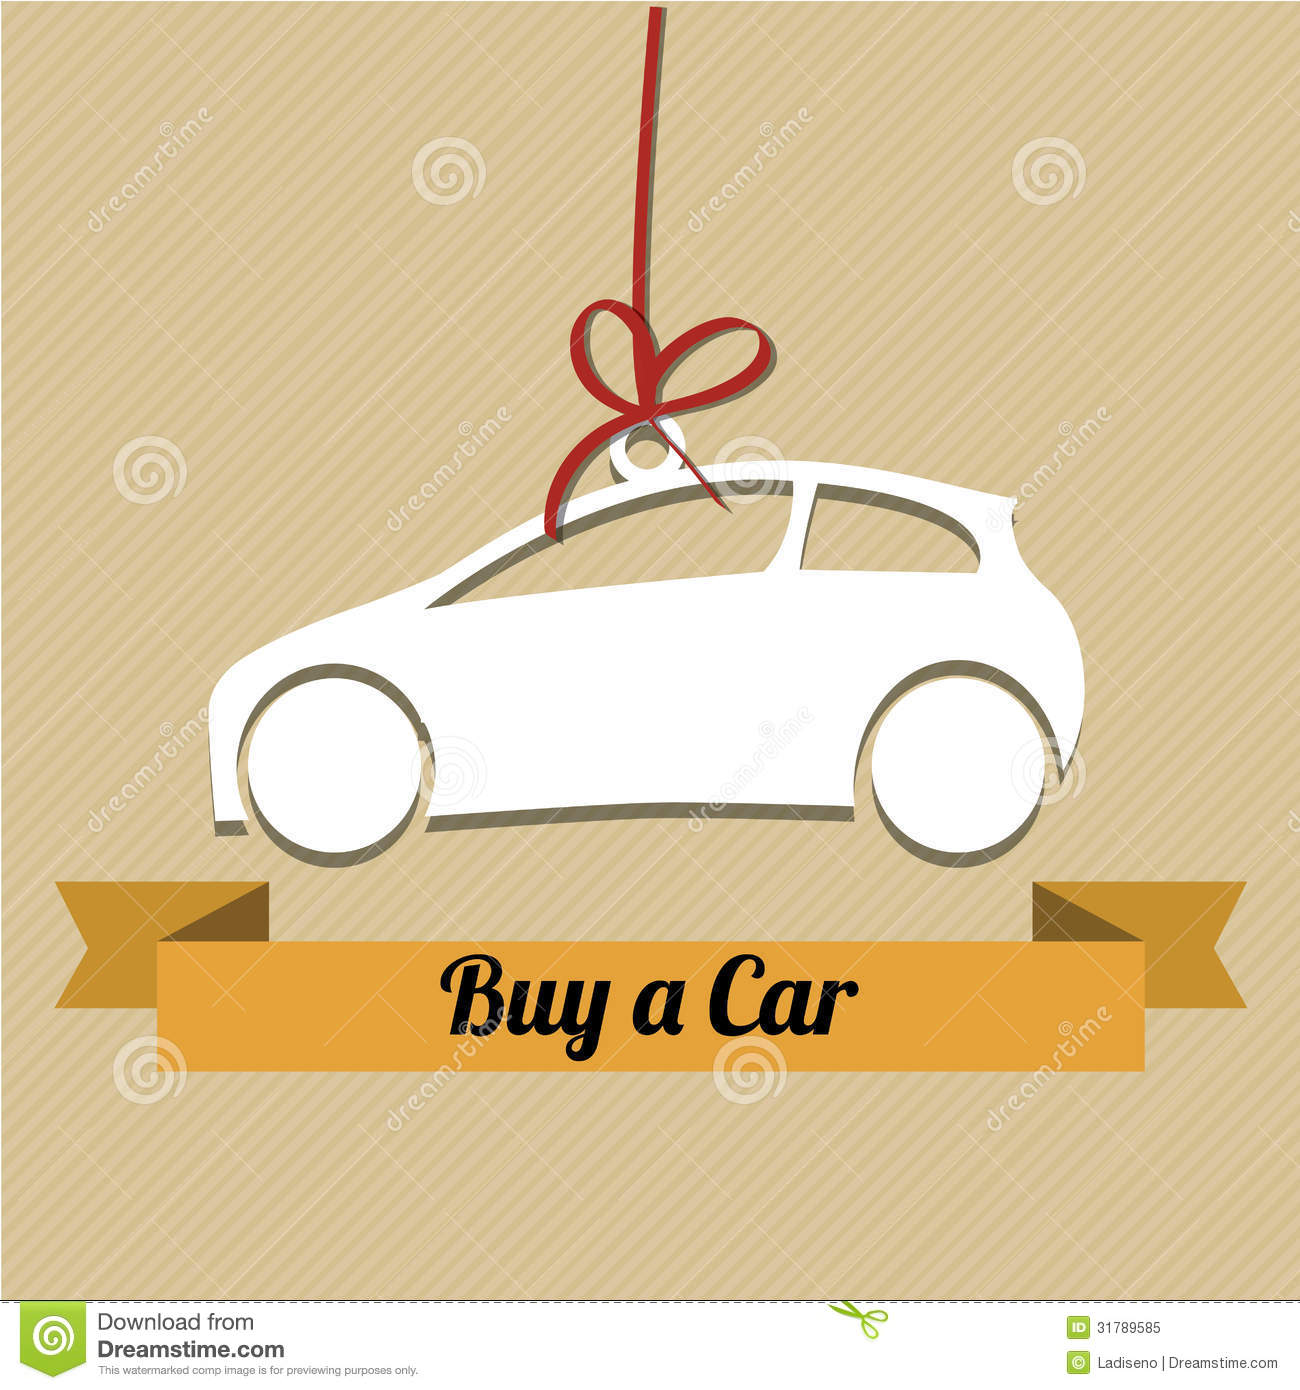 Buy From: Buy A Car Stock Image. Image Of Store, Purchase, Shopping